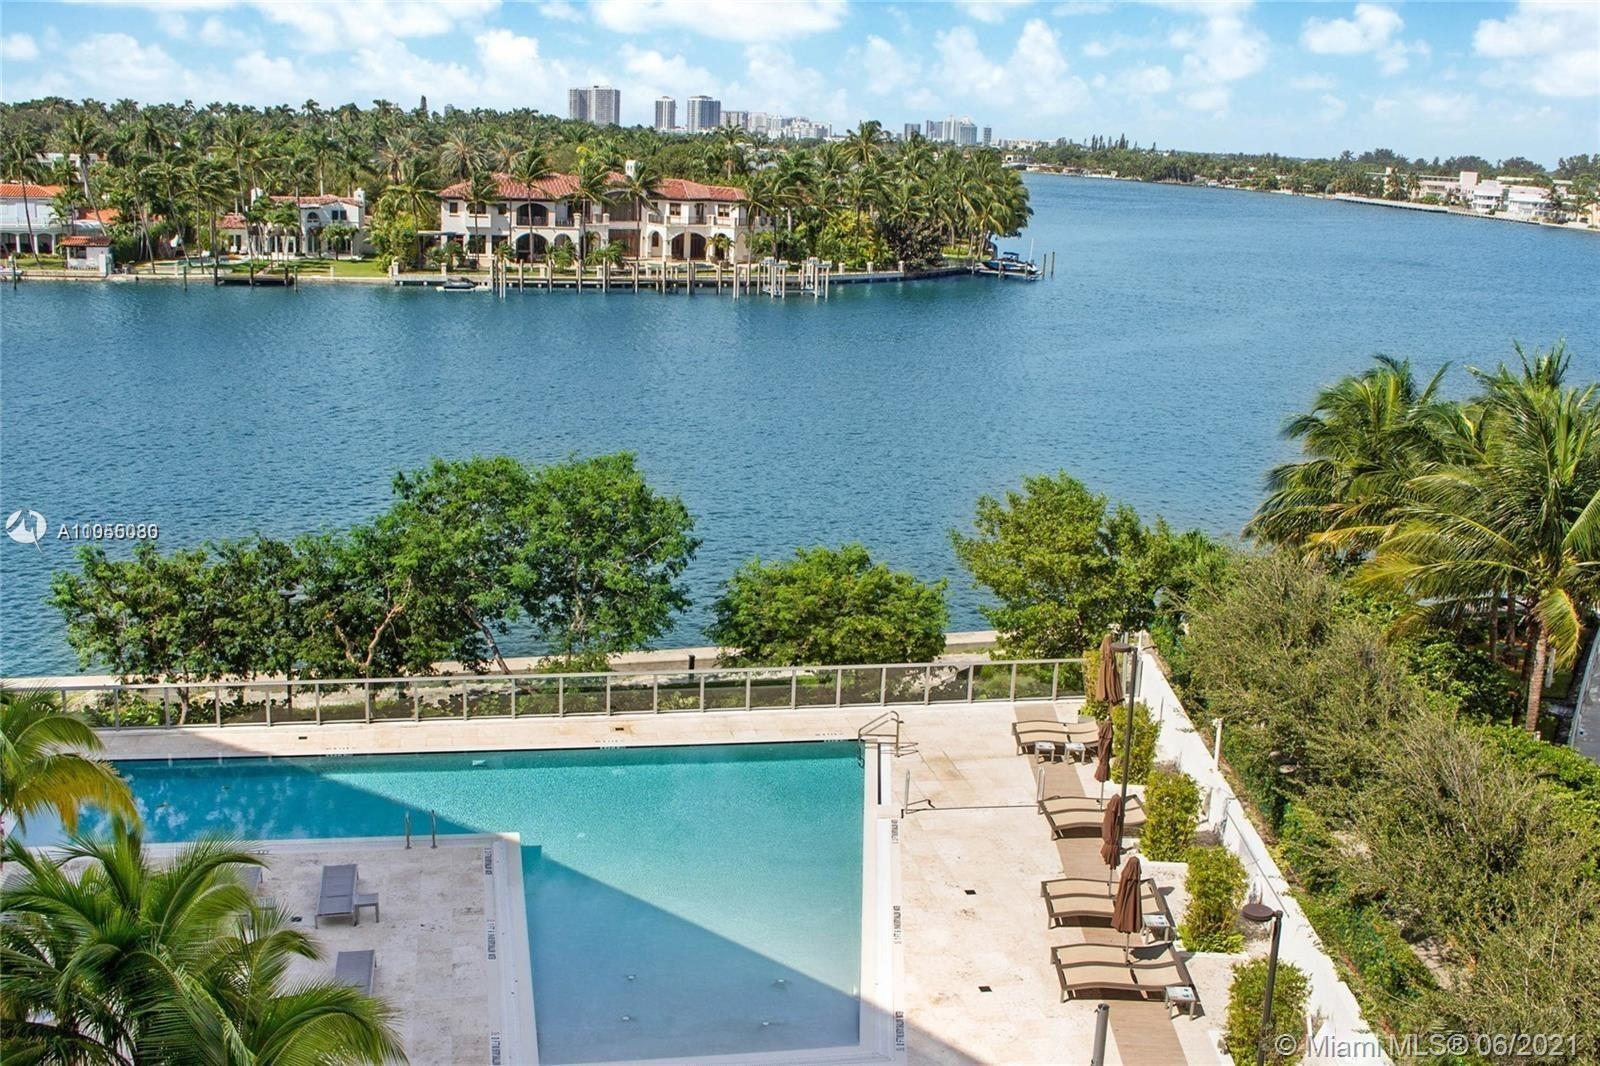 Beautiful 2/2 unit with intracoastal view at Peloro designed by Luis Revuelta, ceramic floors throug